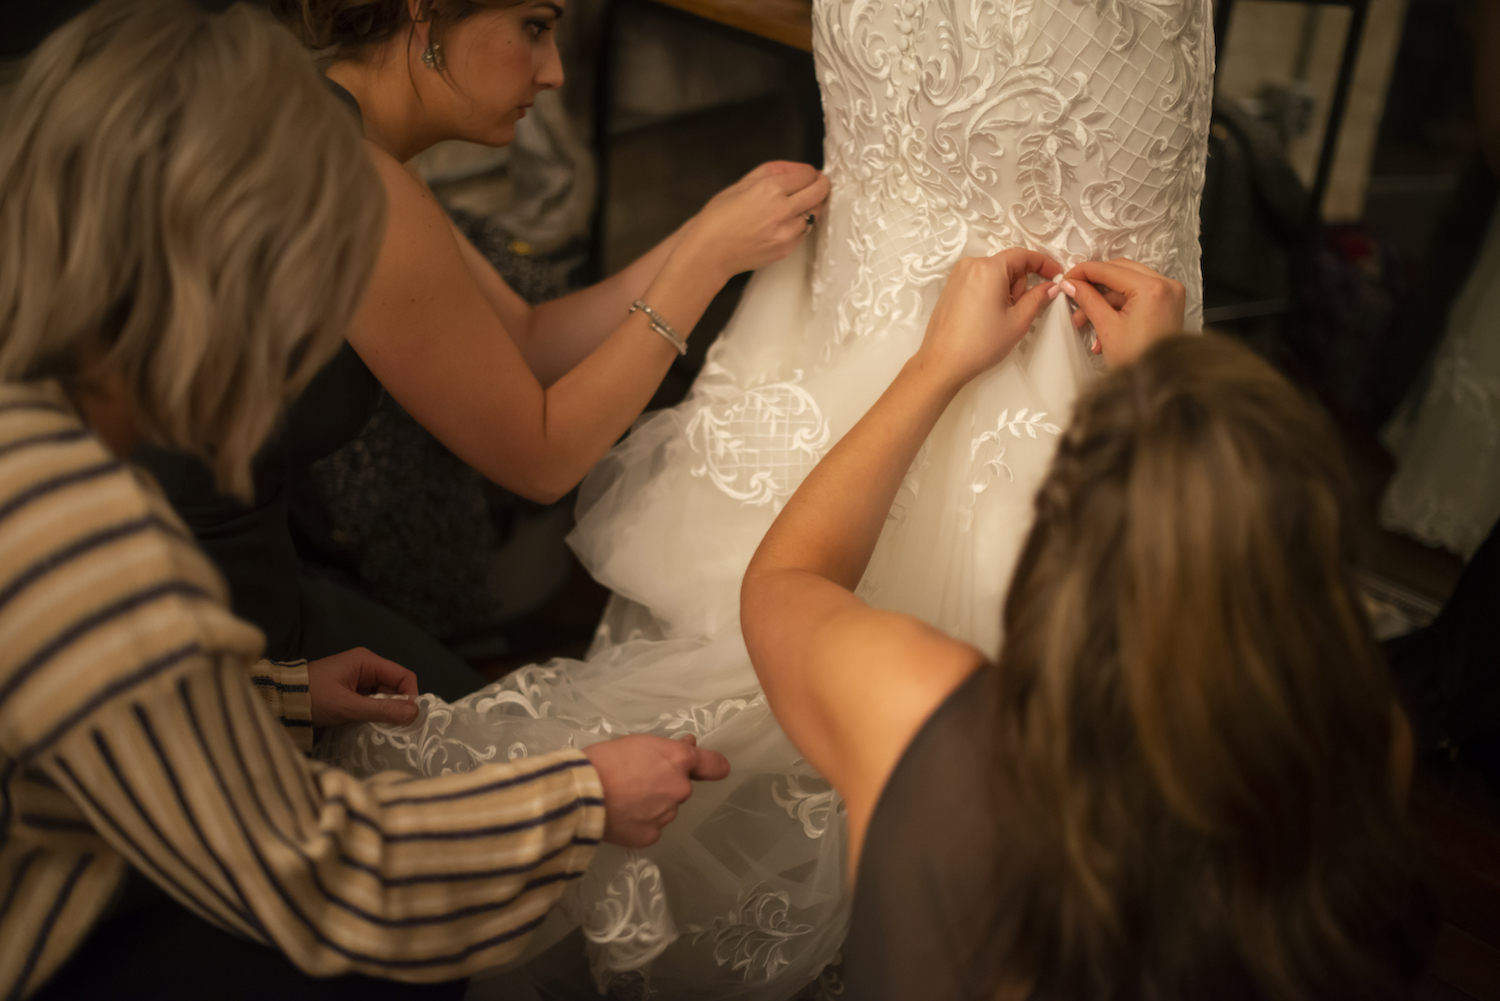 Bride's dress being buttoned up in back